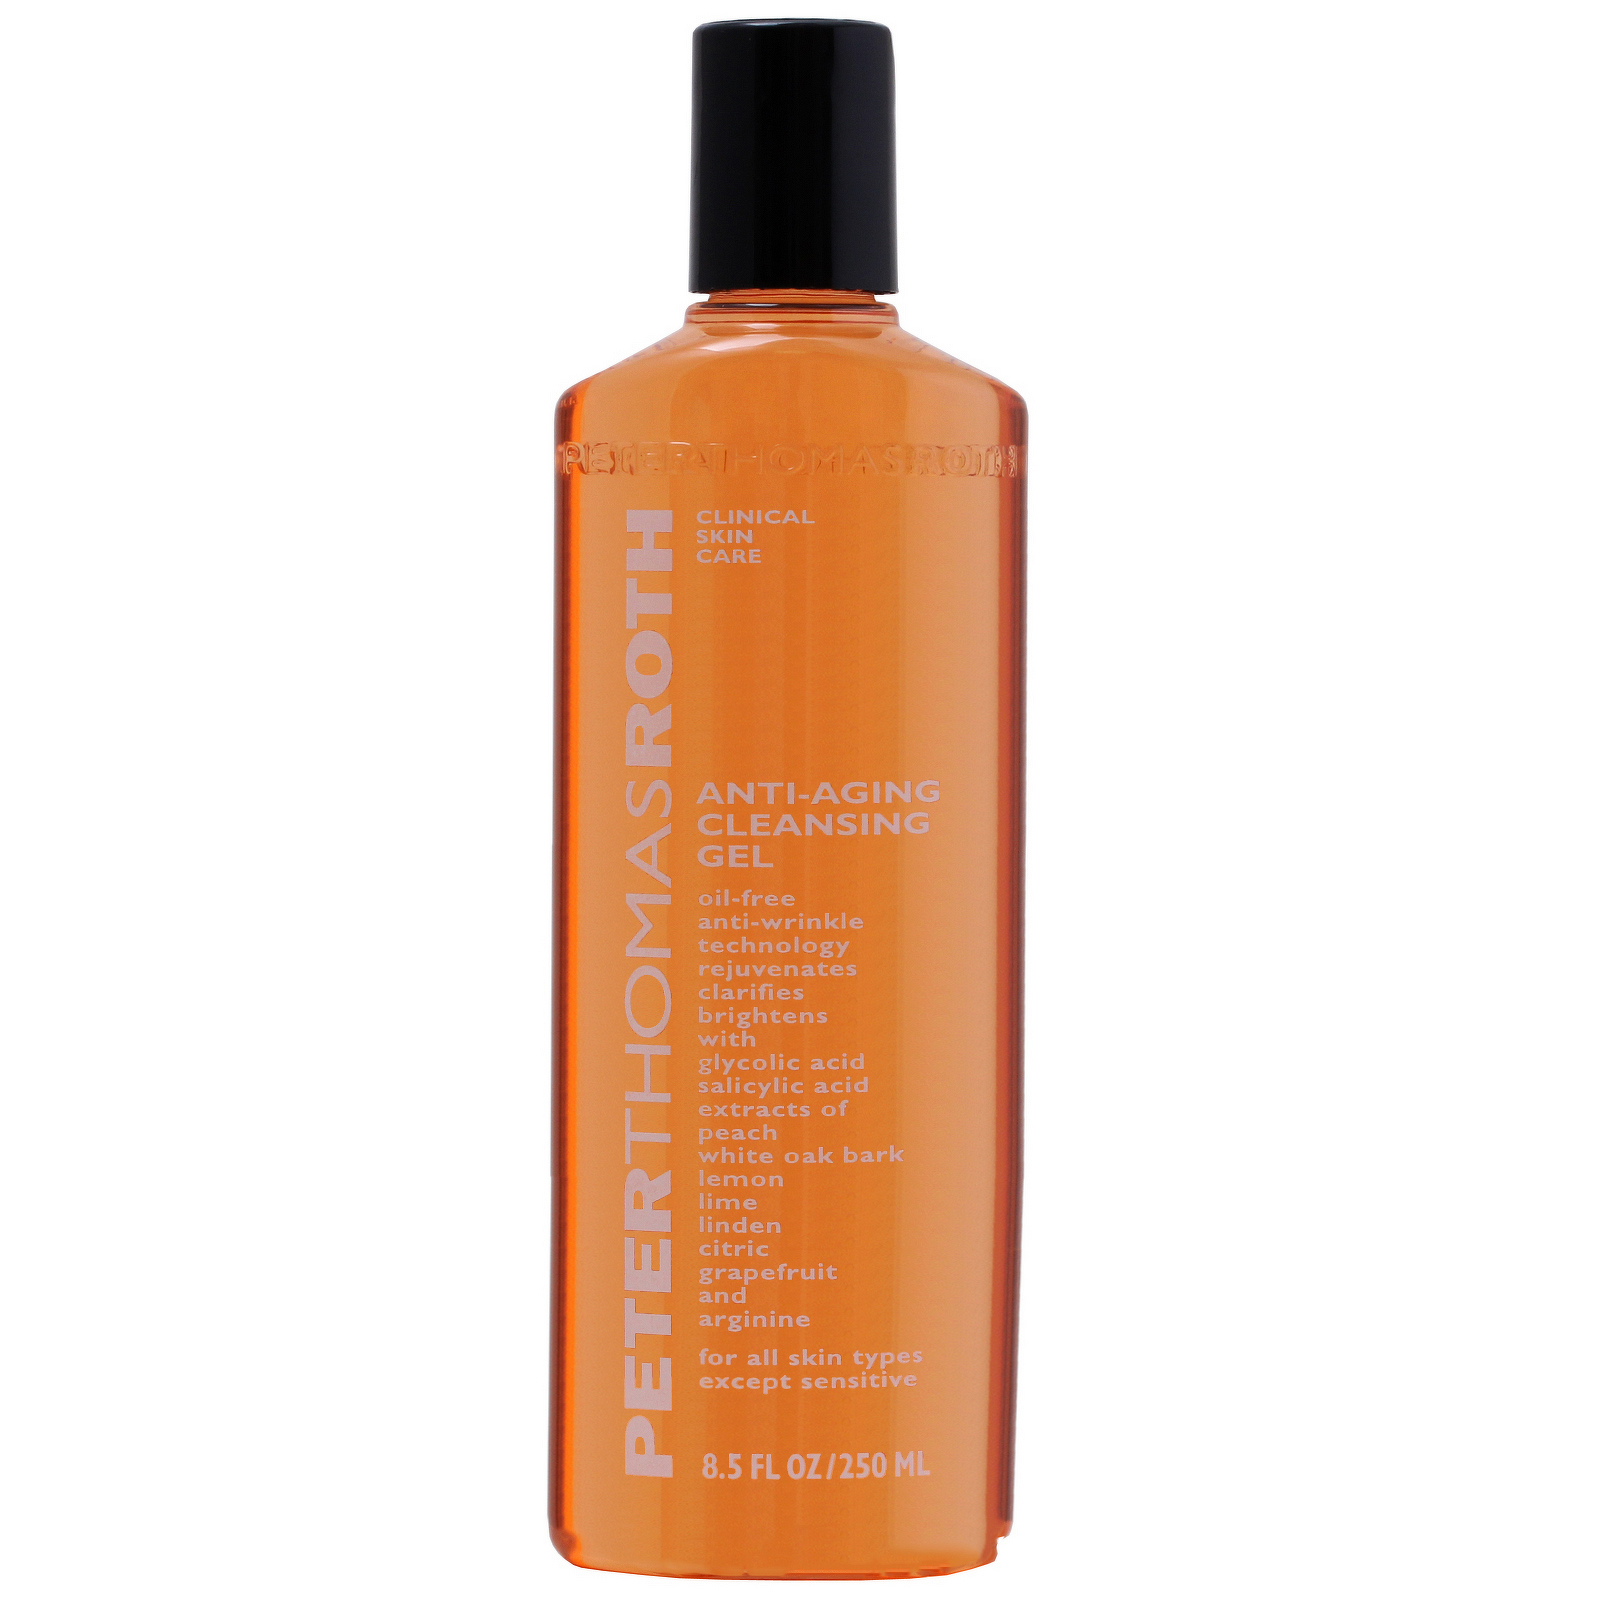 Peter Thomas Roth Cleansers & Toners Anti Aging Cleansing Gel for All Skin Types Except Sensitive 250ml